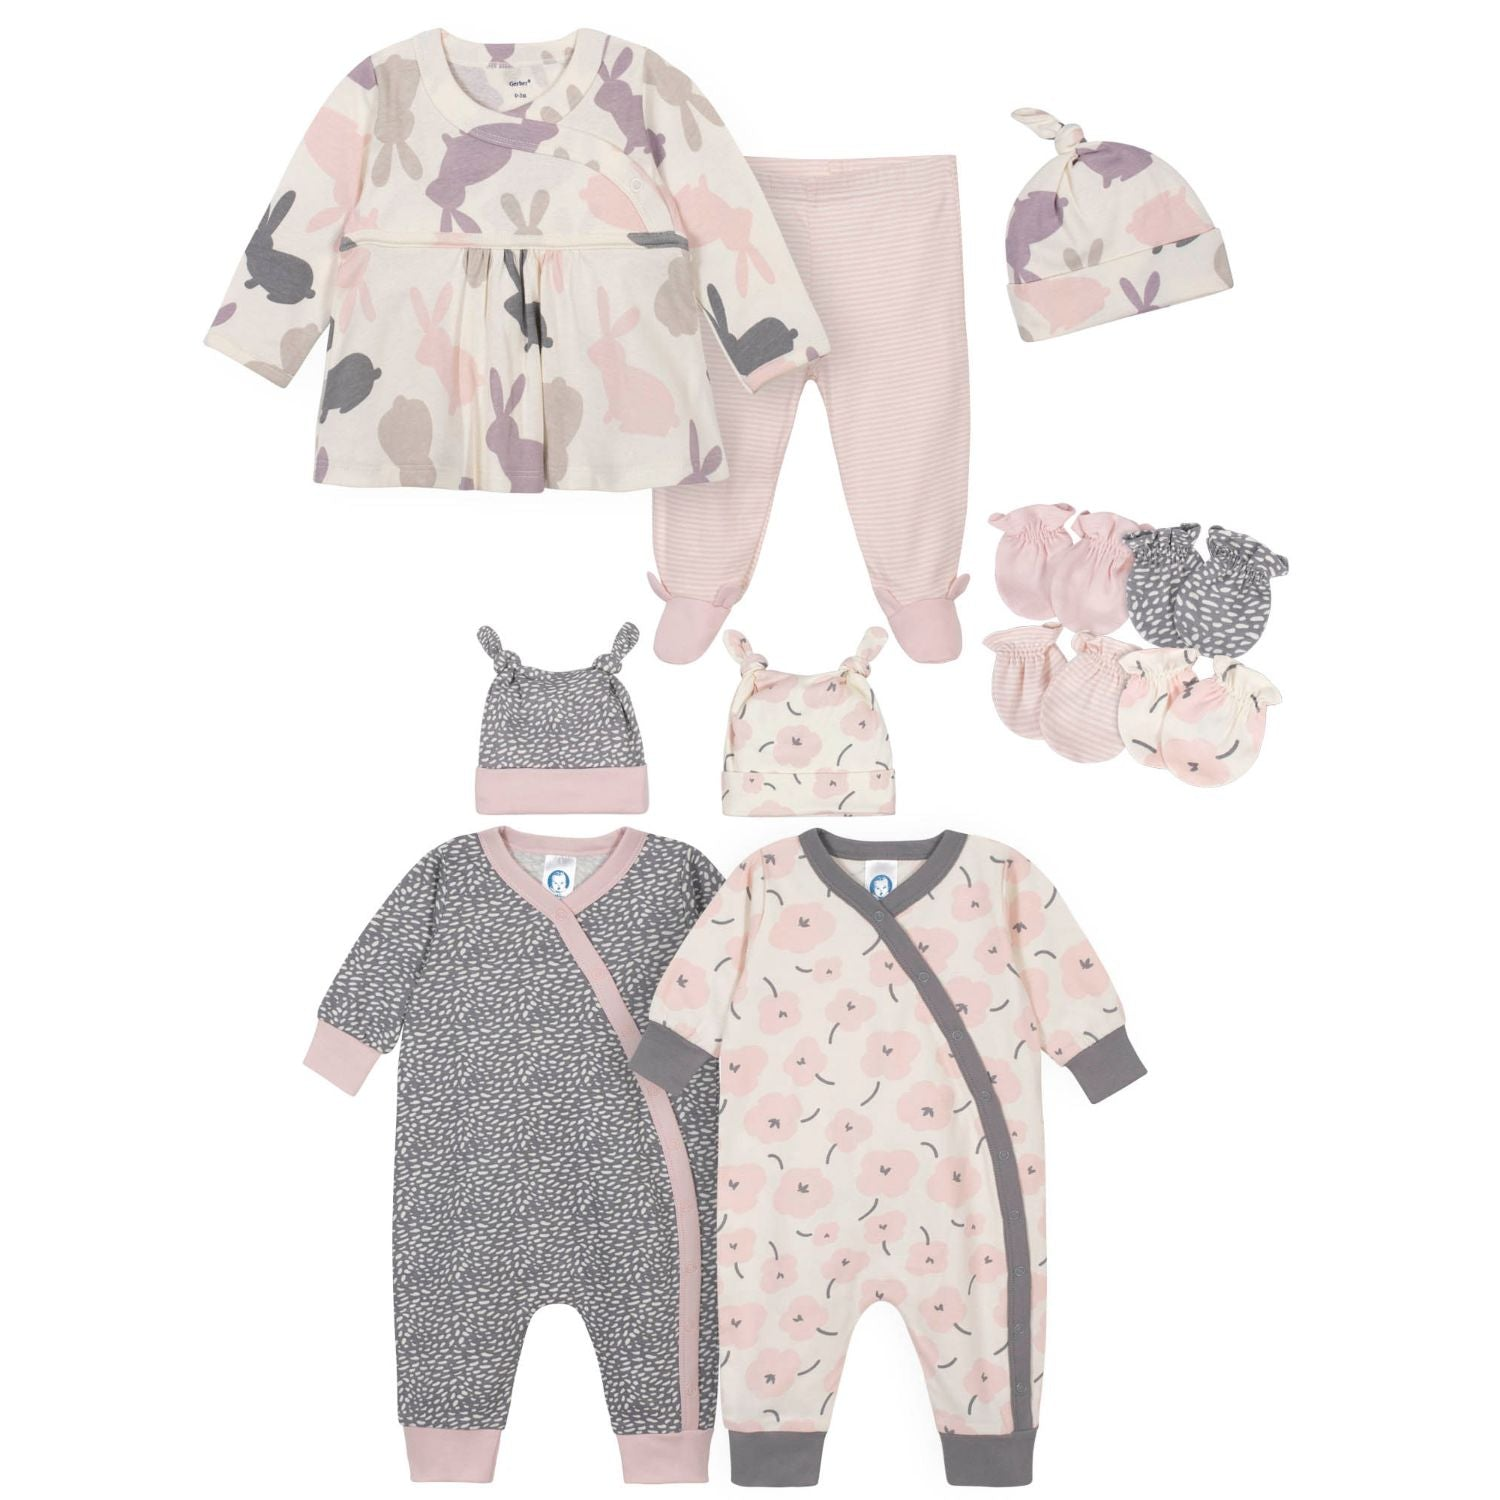 11-Piece Baby Girls Bunny Gift Set-Gerber Childrenswear Wholesale